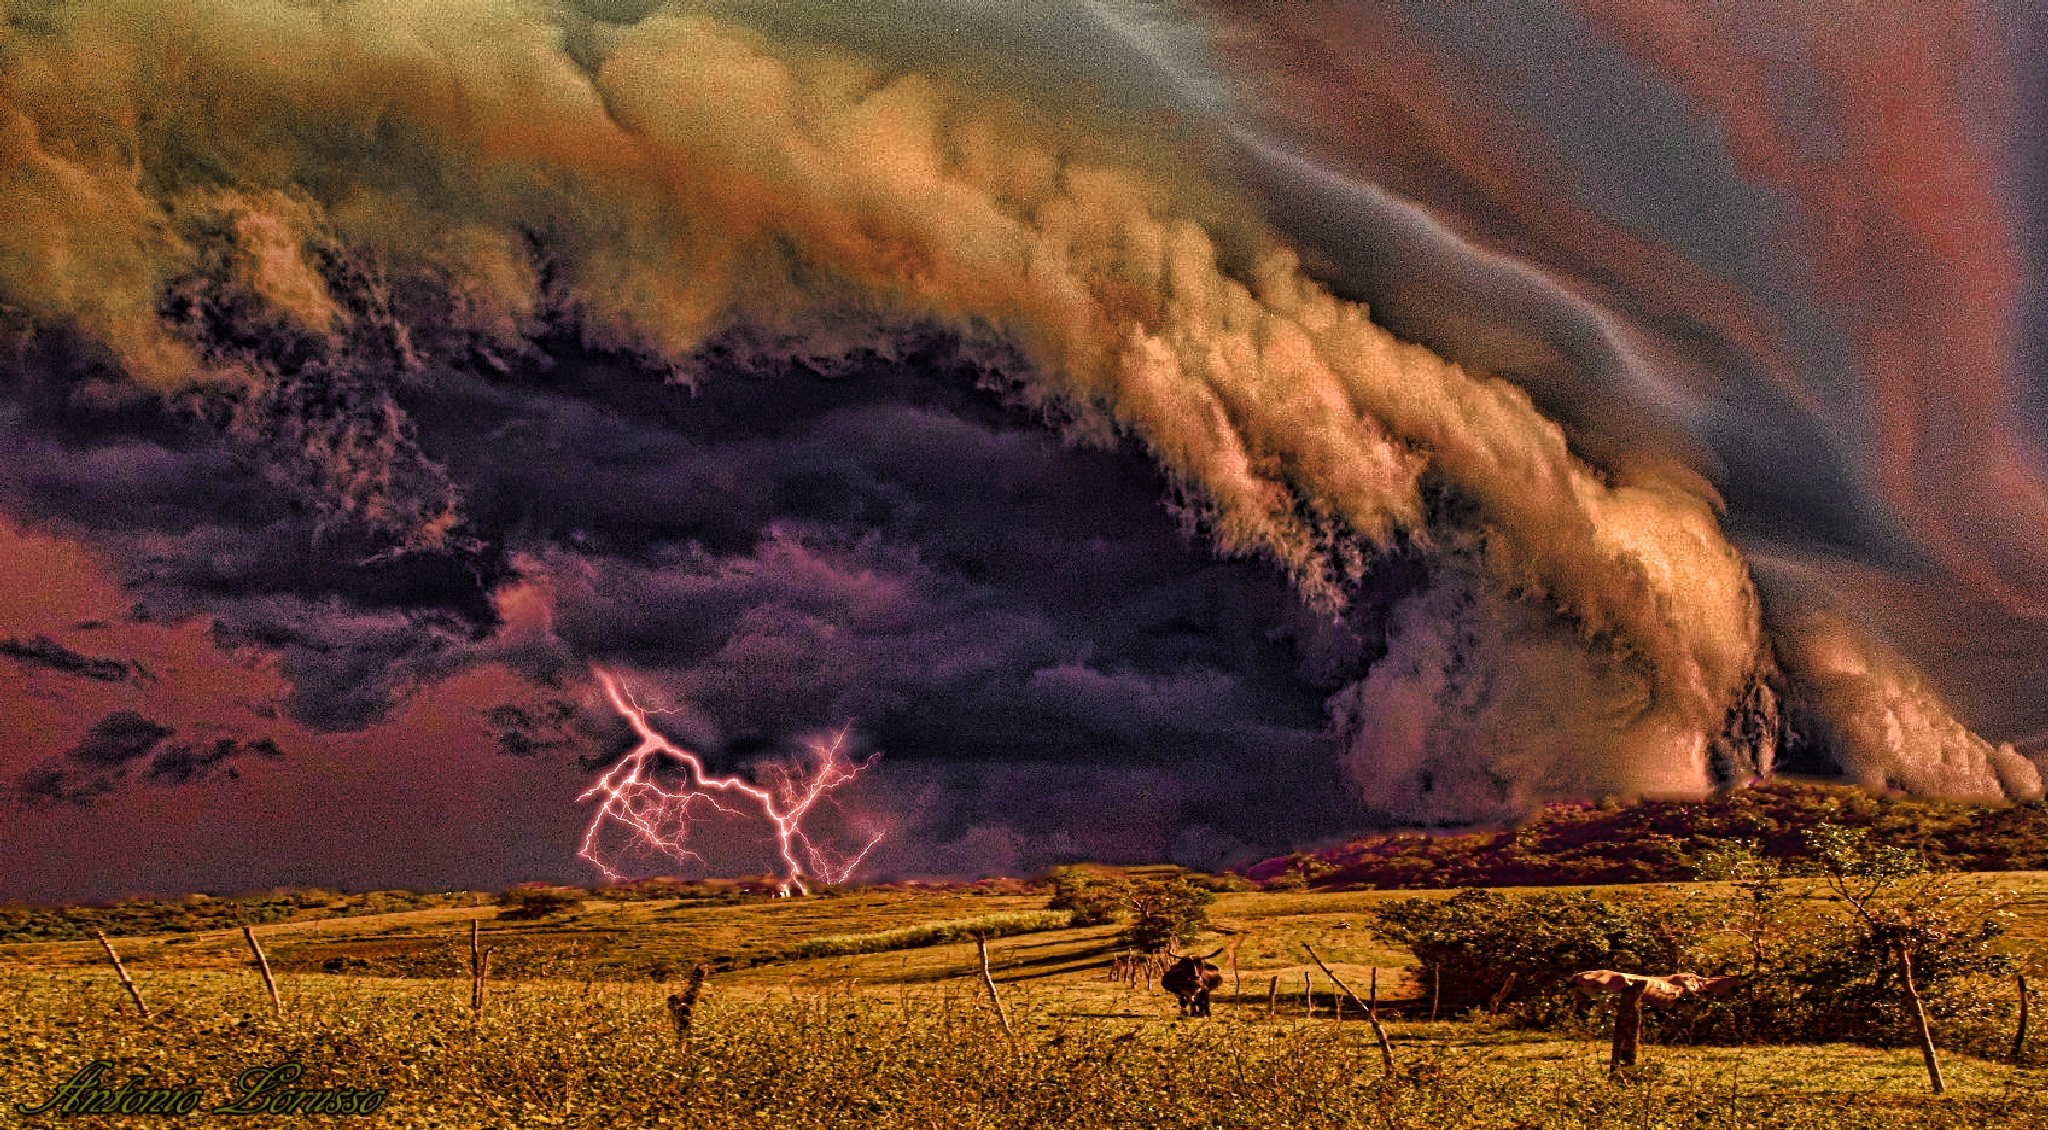 the storm by Anto Lorusso